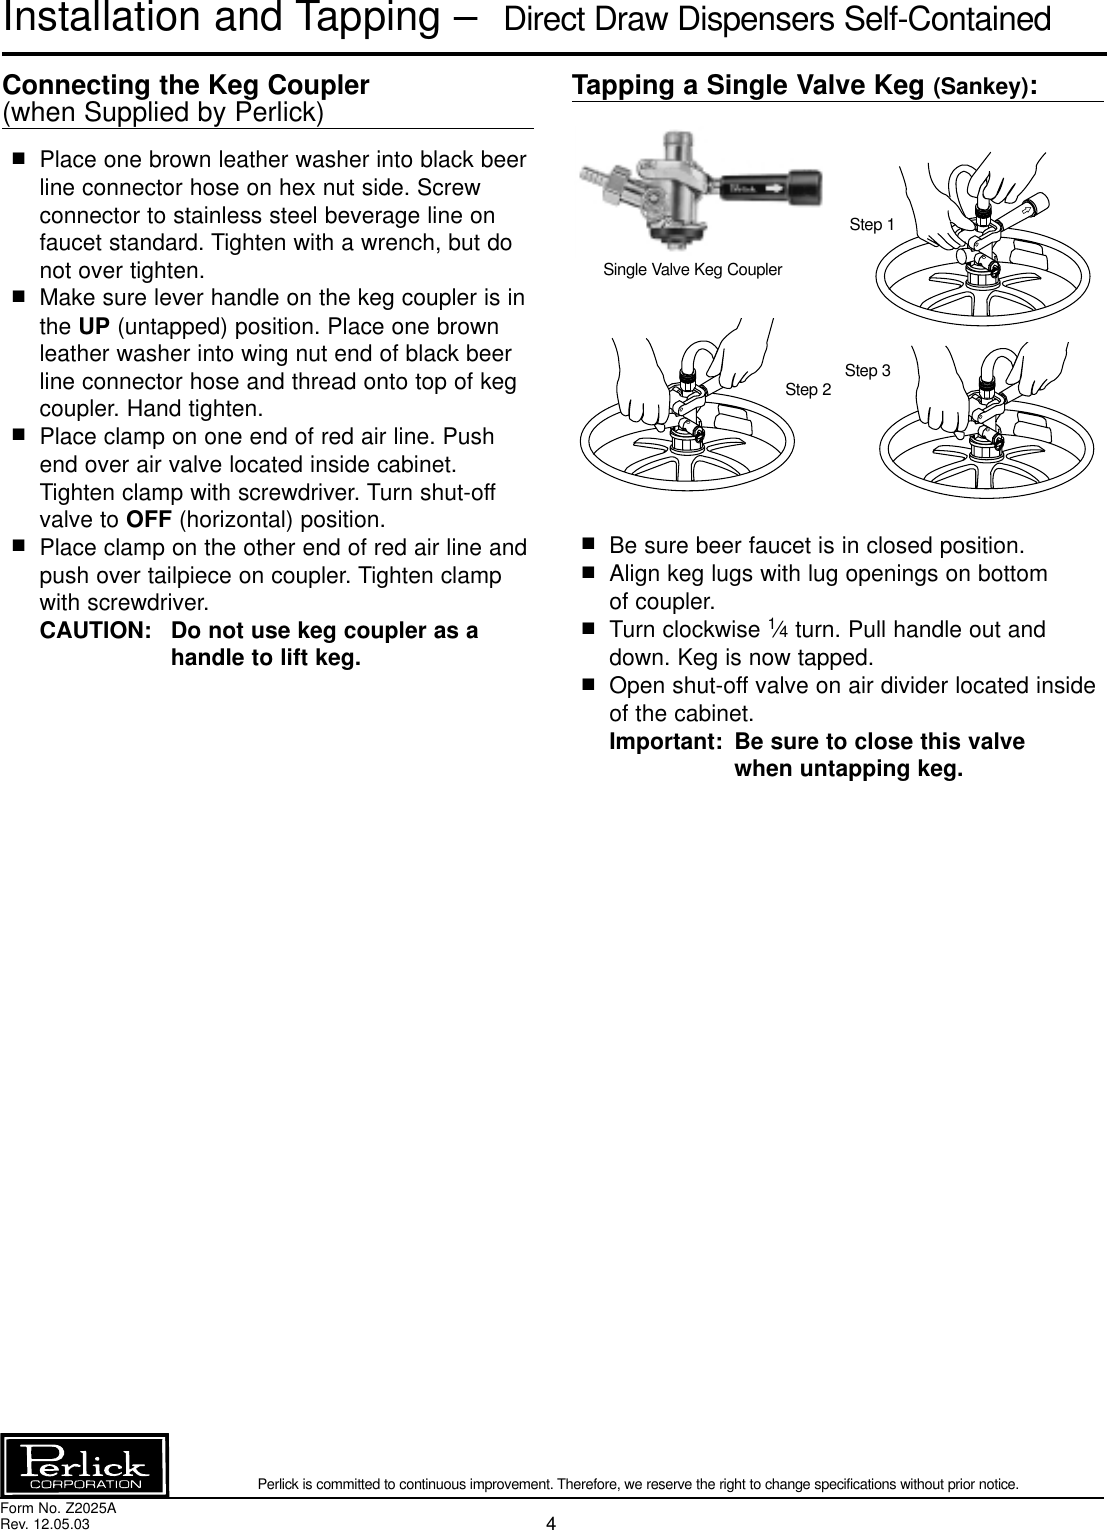 Perlick Ds Series Users Manual Wiring Diagram For Keg Beer Page 4 Of 12